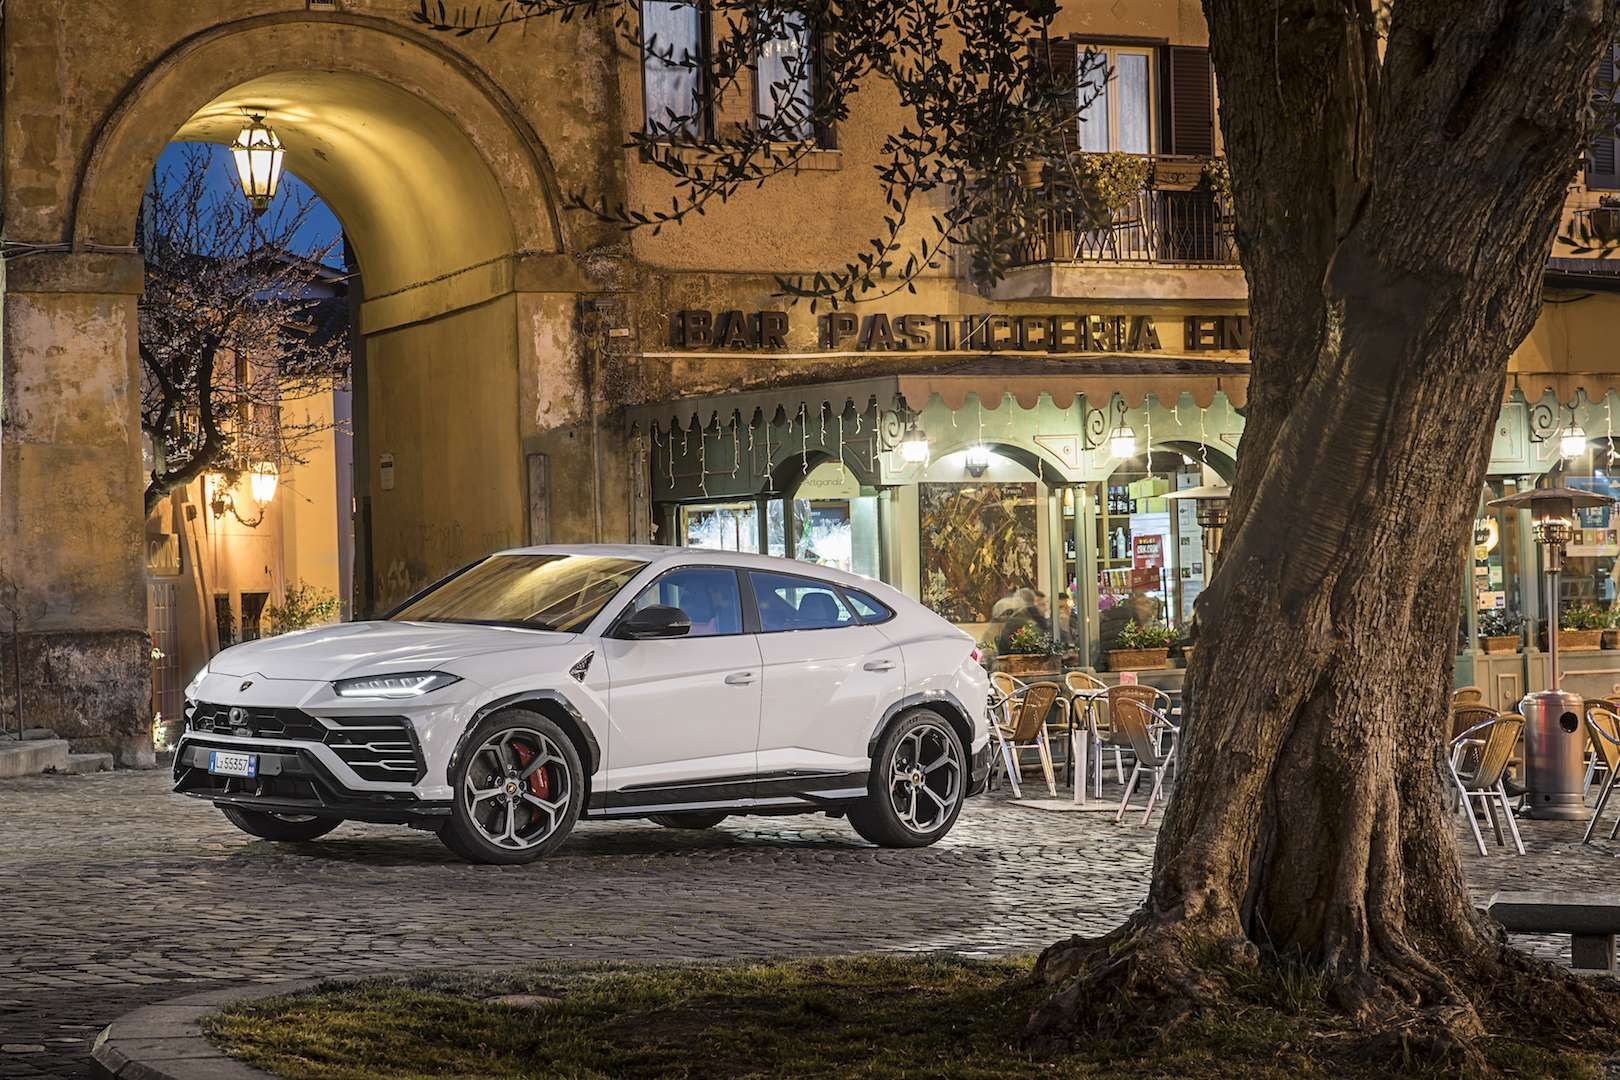 Lamborghini Urus First Drive In Italy Lambo Sets A Sizzling Standard For Suv Performance Suv Lambo Driving In Italy